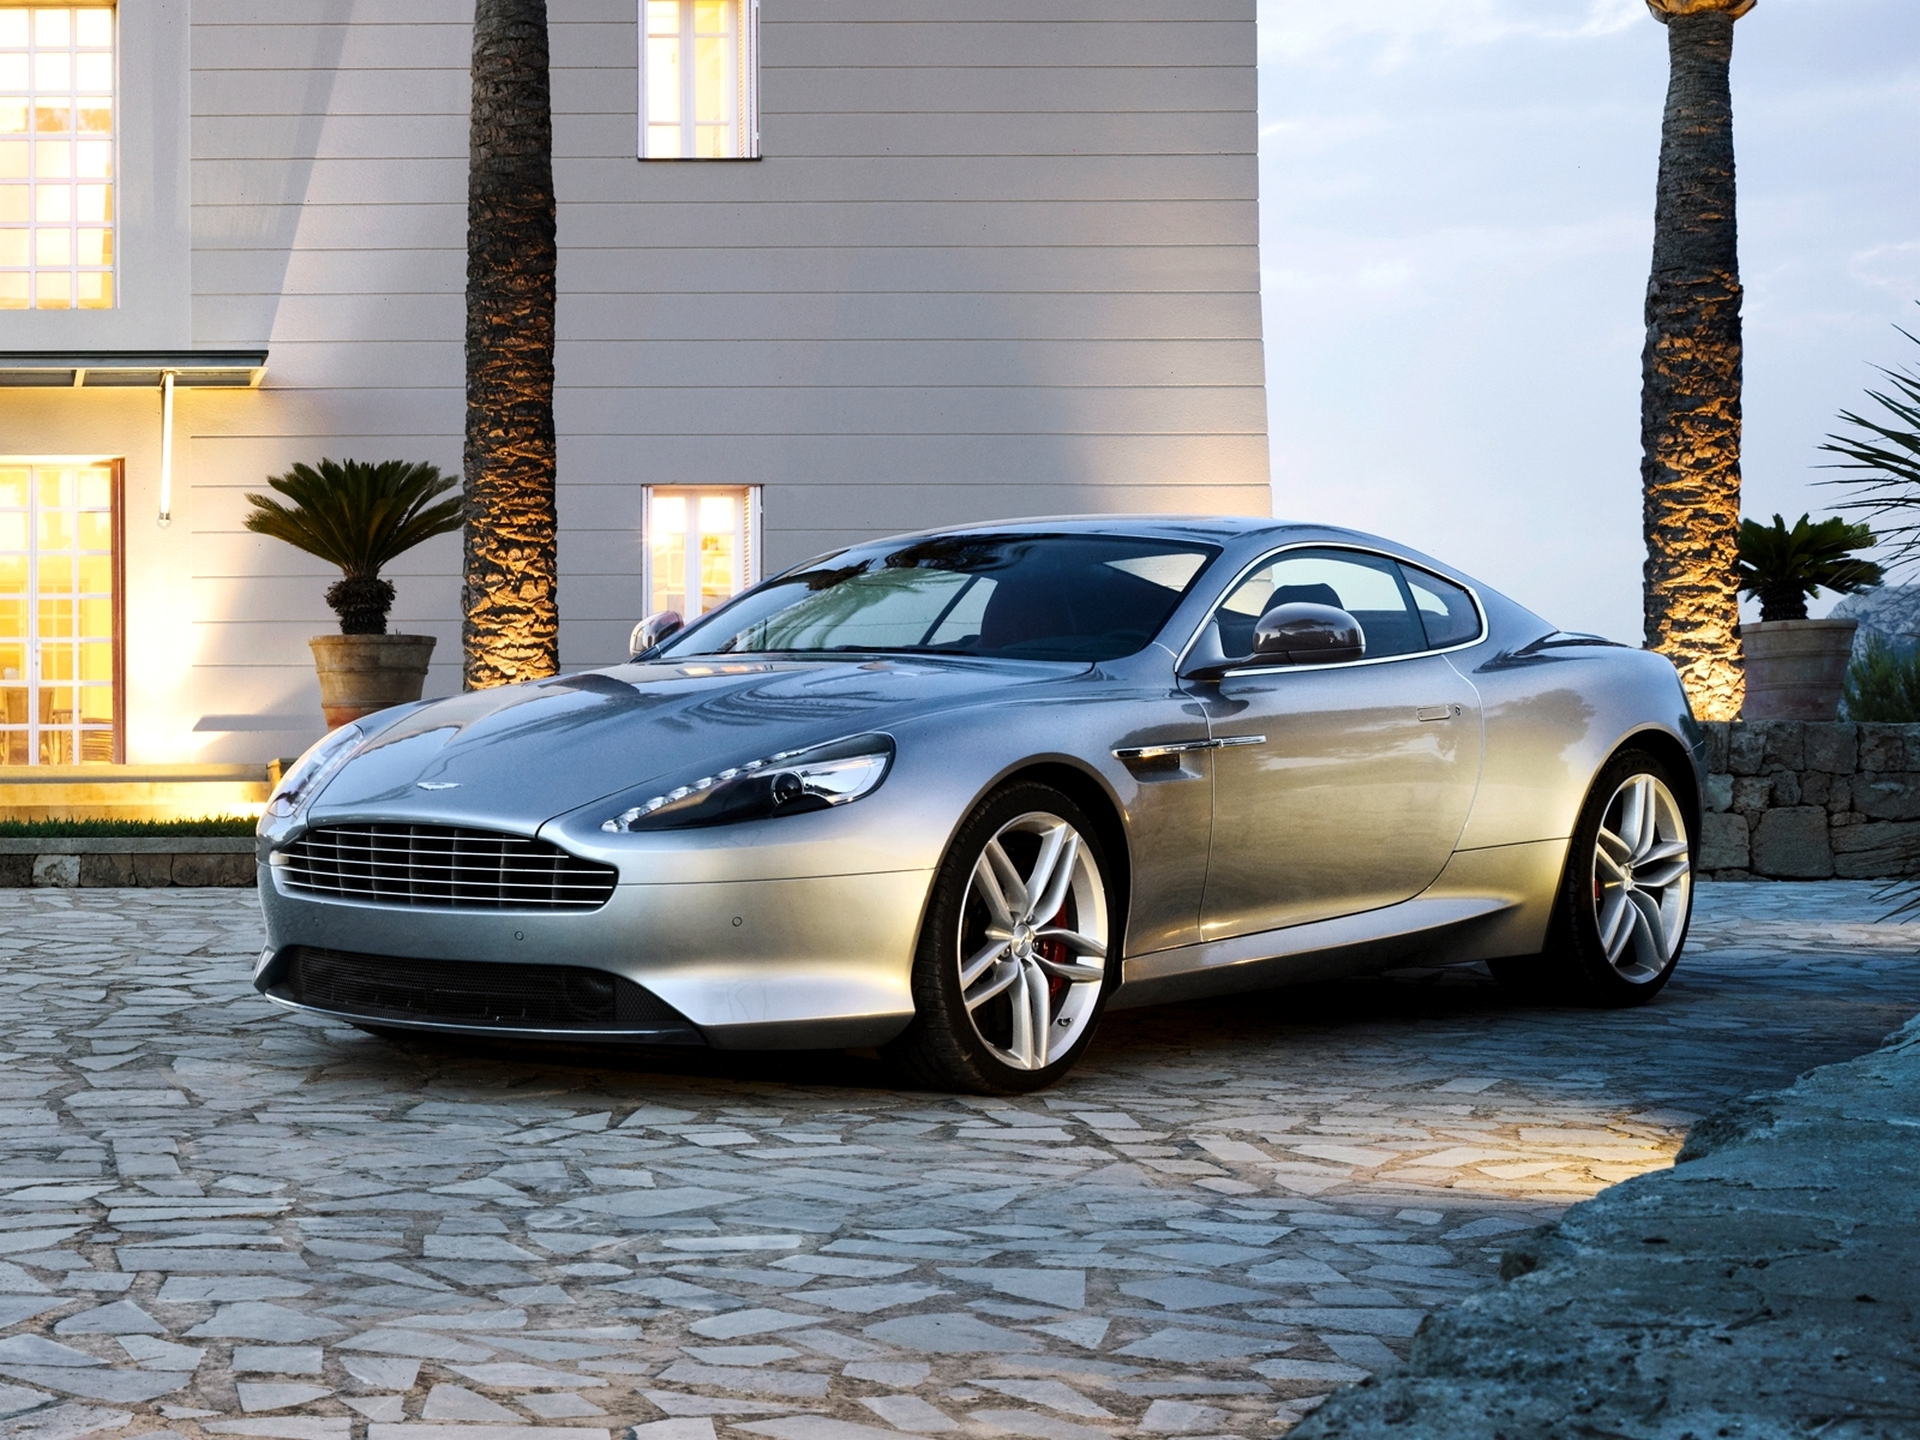 102557 download wallpaper Aston Martin, Cars, Silver, Silvery, Aston Martin Db9 screensavers and pictures for free